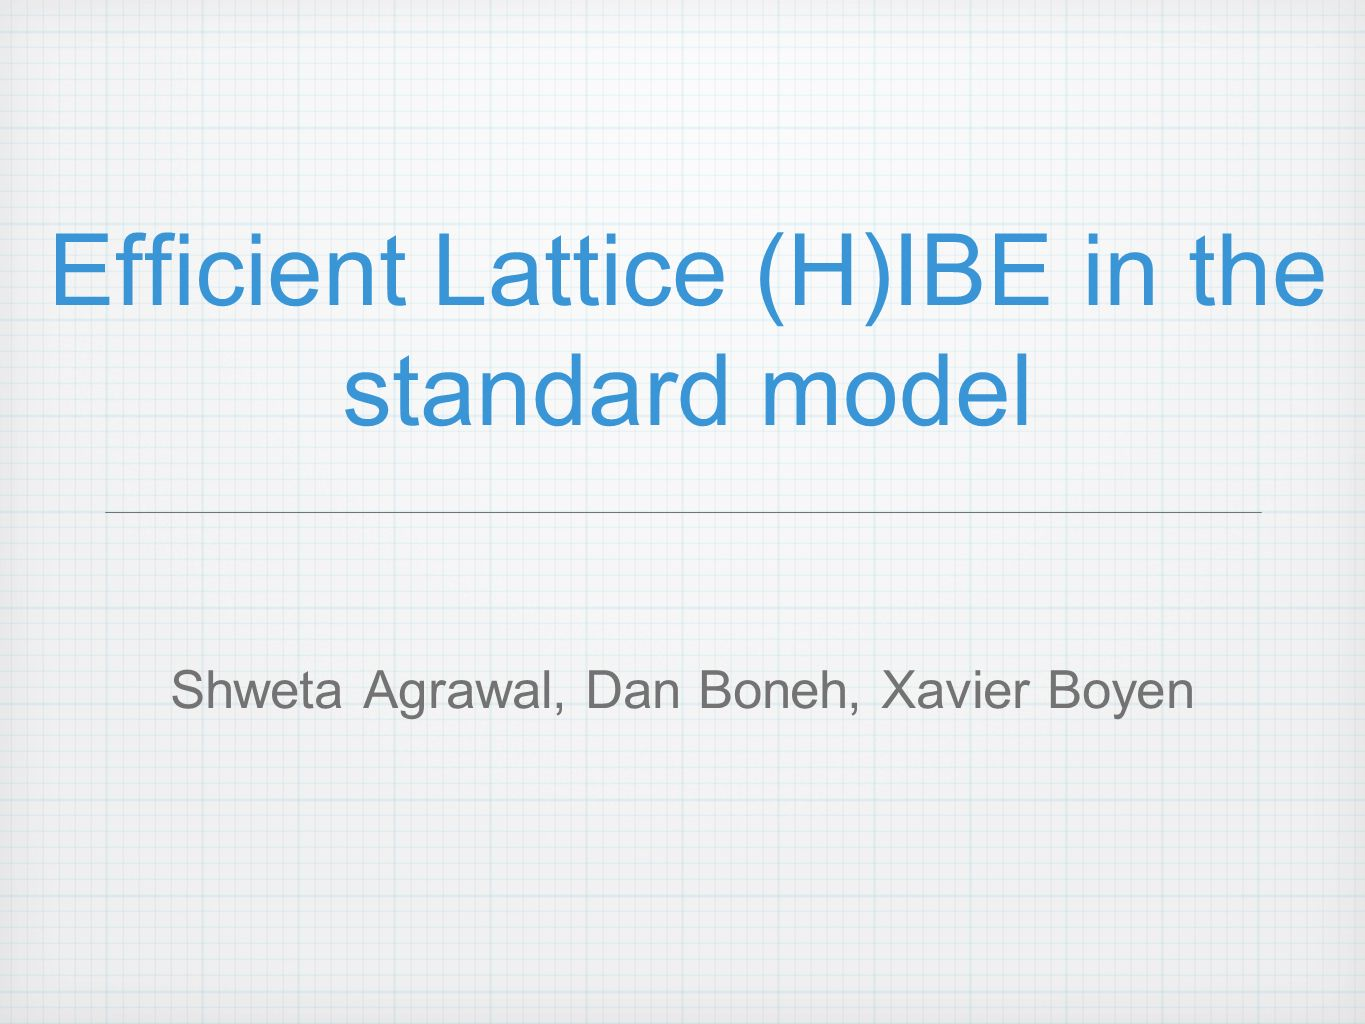 Efficient Lattice (H)IBE in the standard model Shweta Agrawal, Dan Boneh, Xavier Boyen